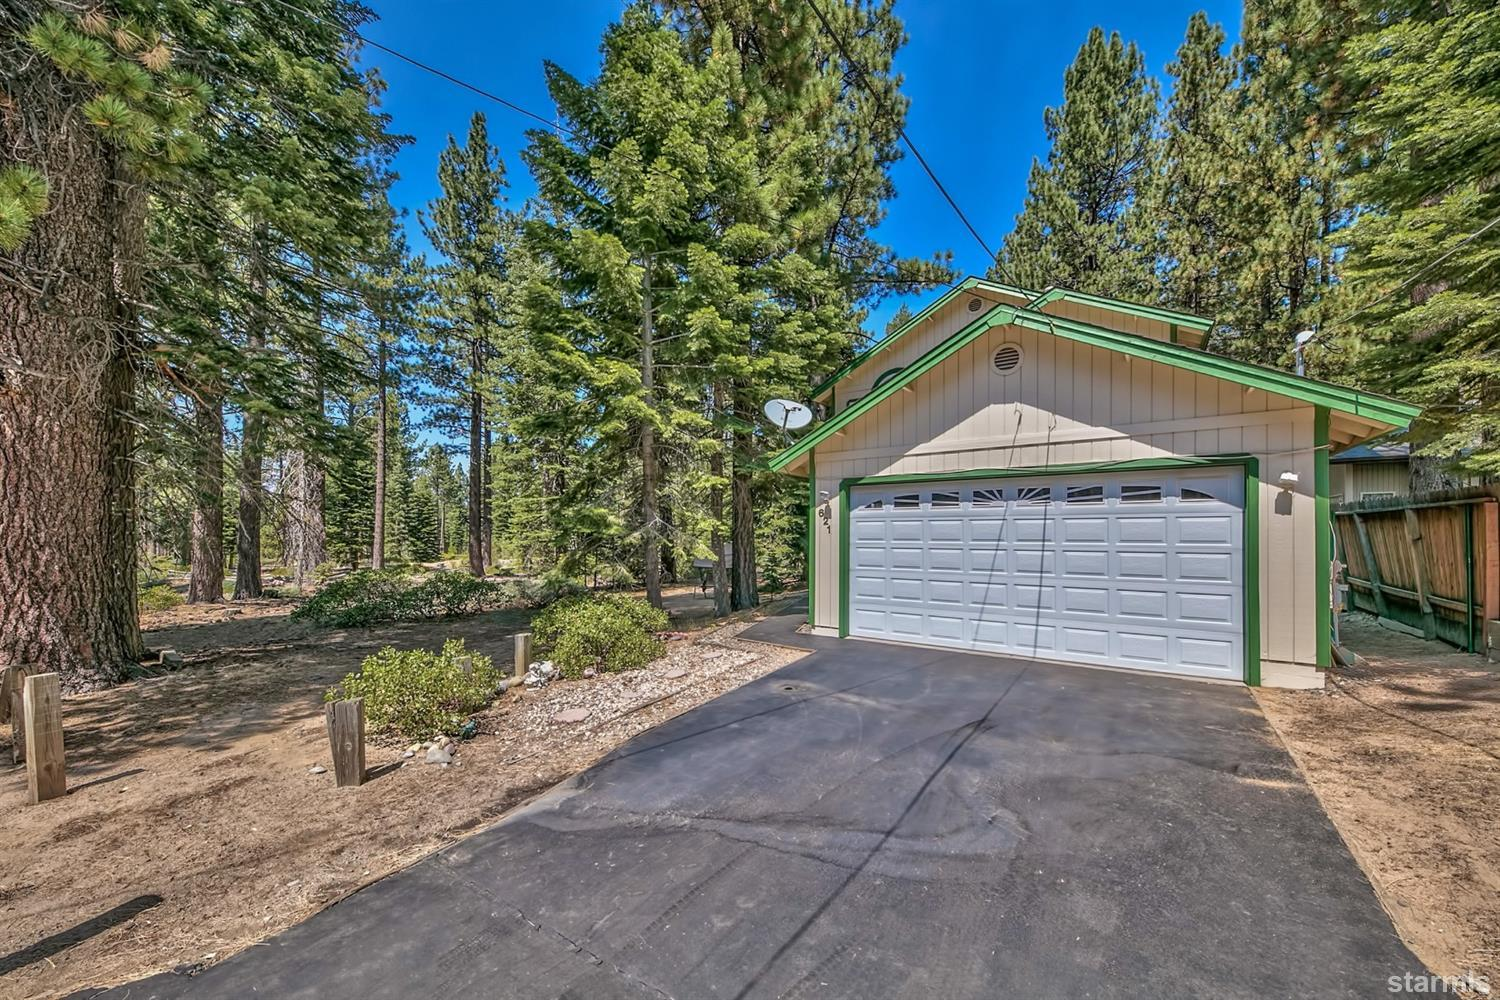 Clement Street, SOUTH LAKE TAHOE, CA 96150